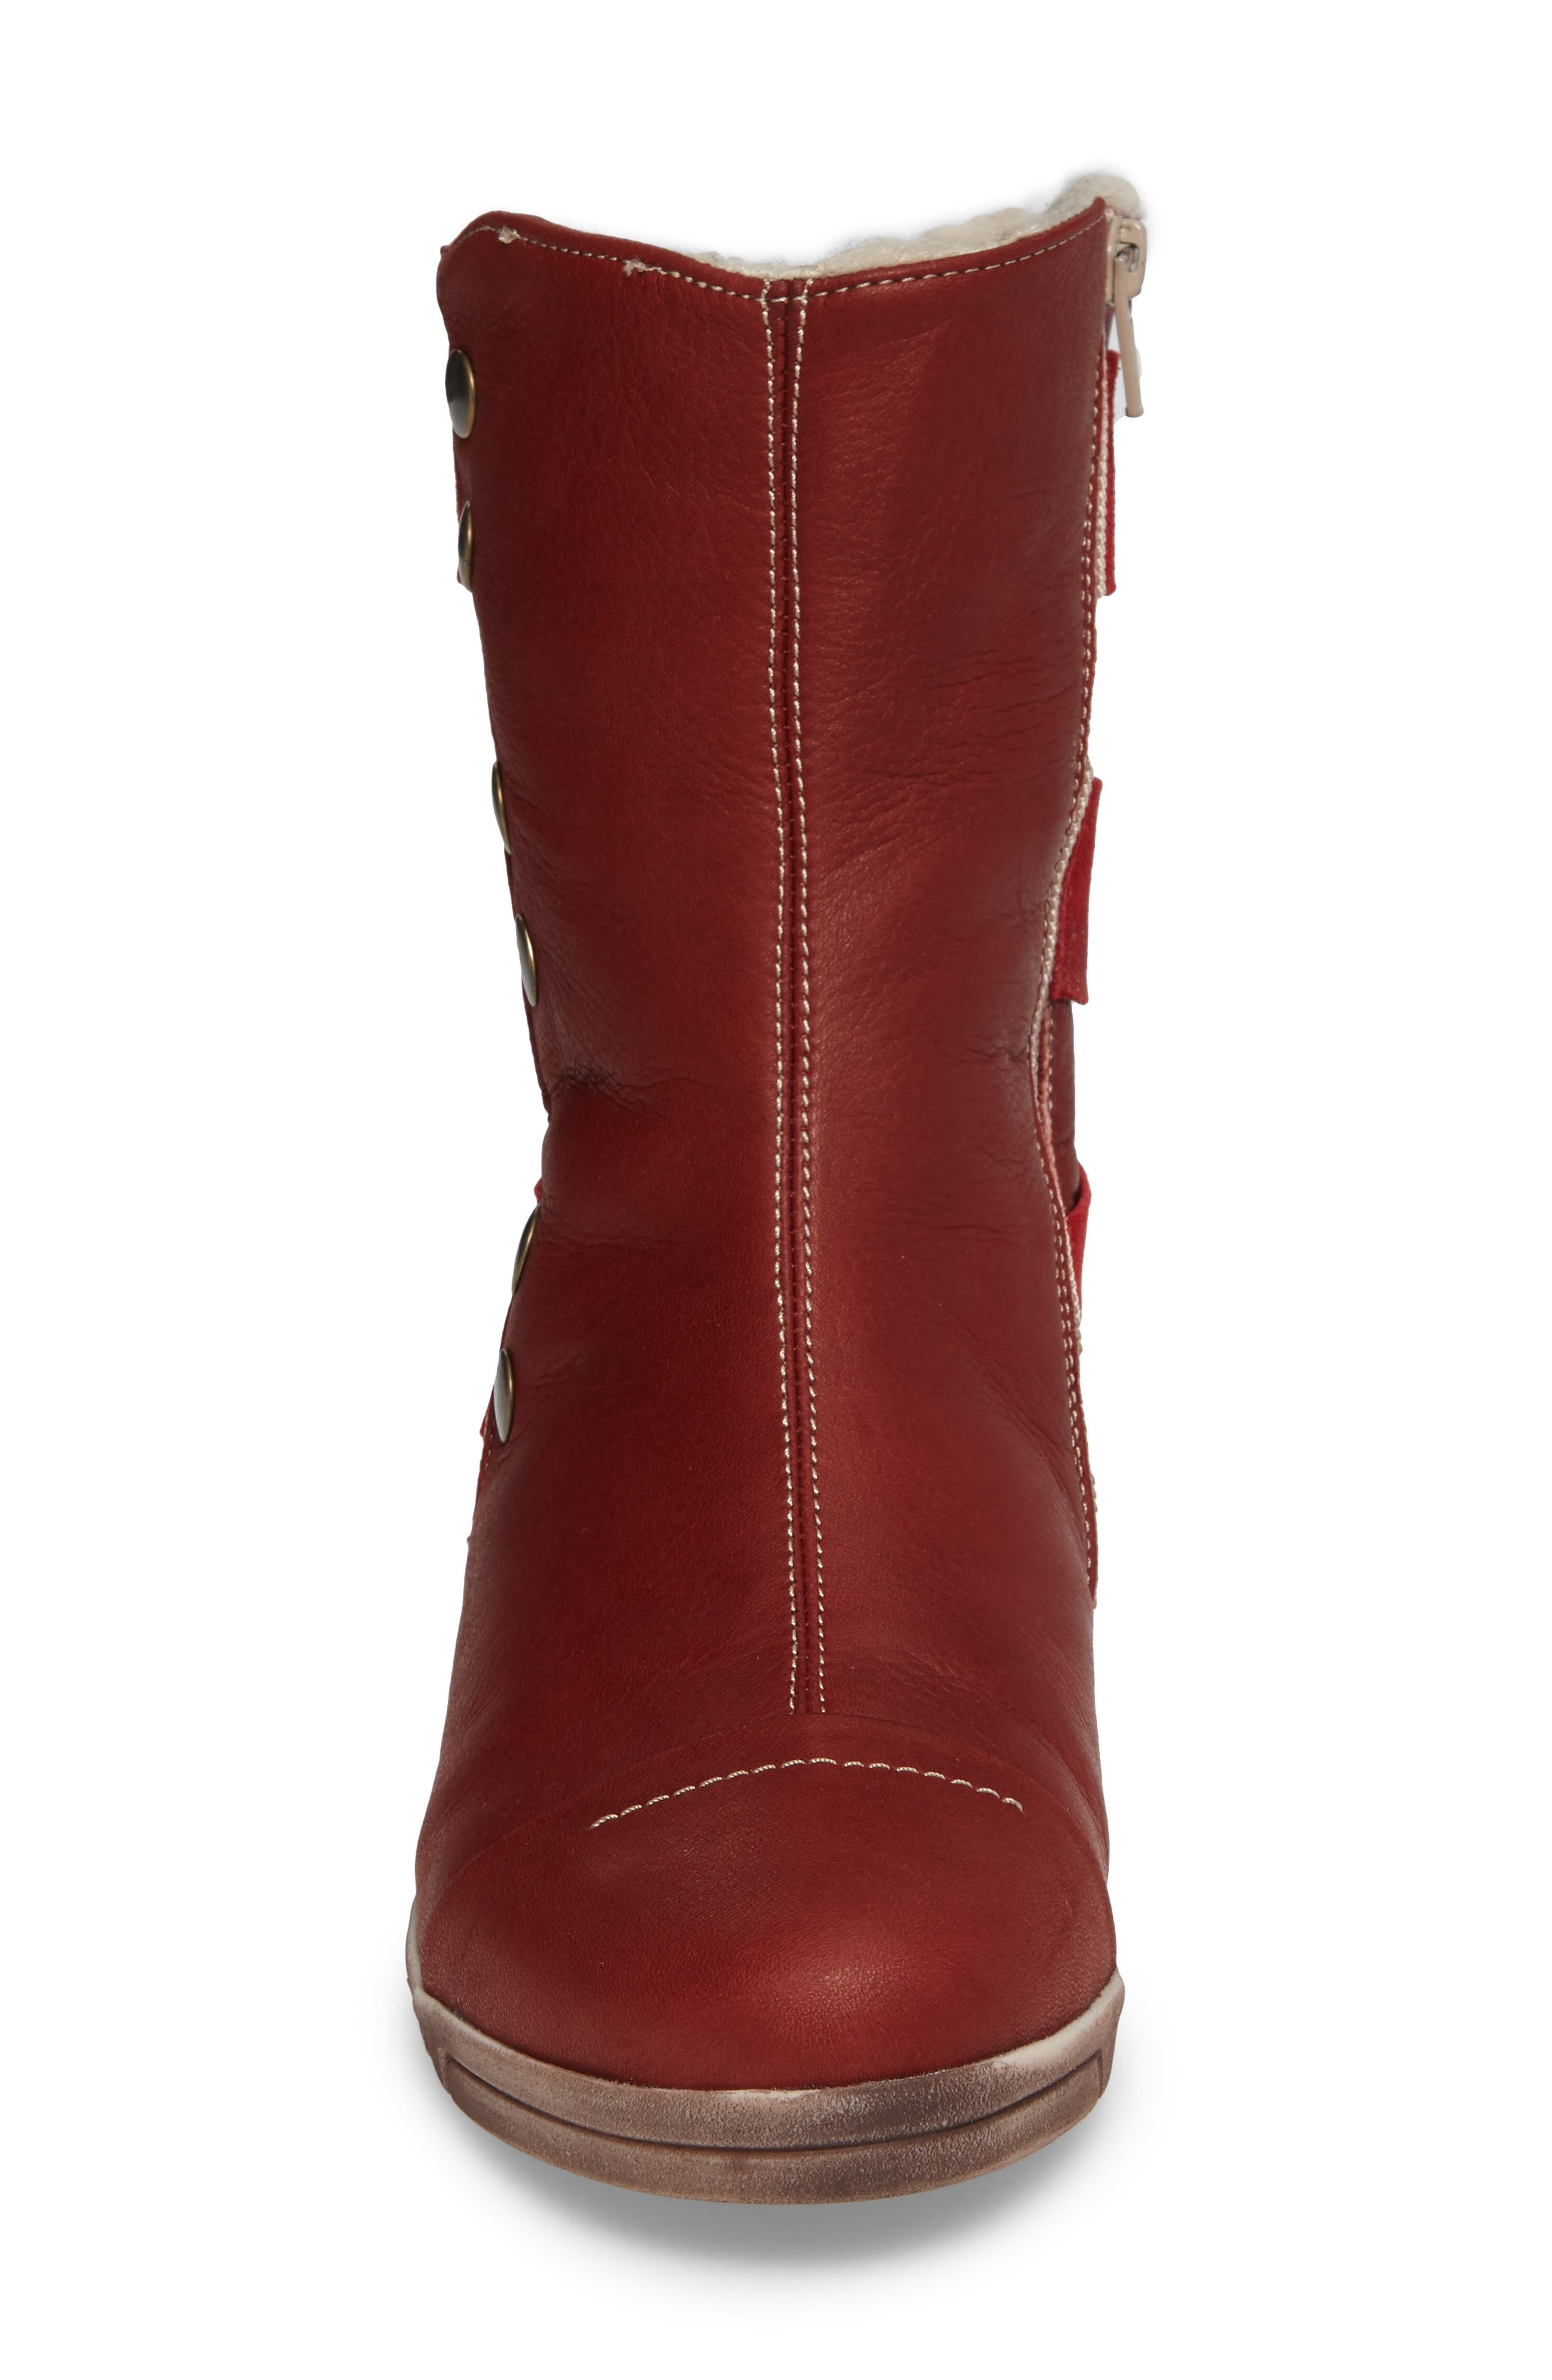 Amber Wool Lined Bootie,                             Alternate thumbnail 4, color,                             Red Leather